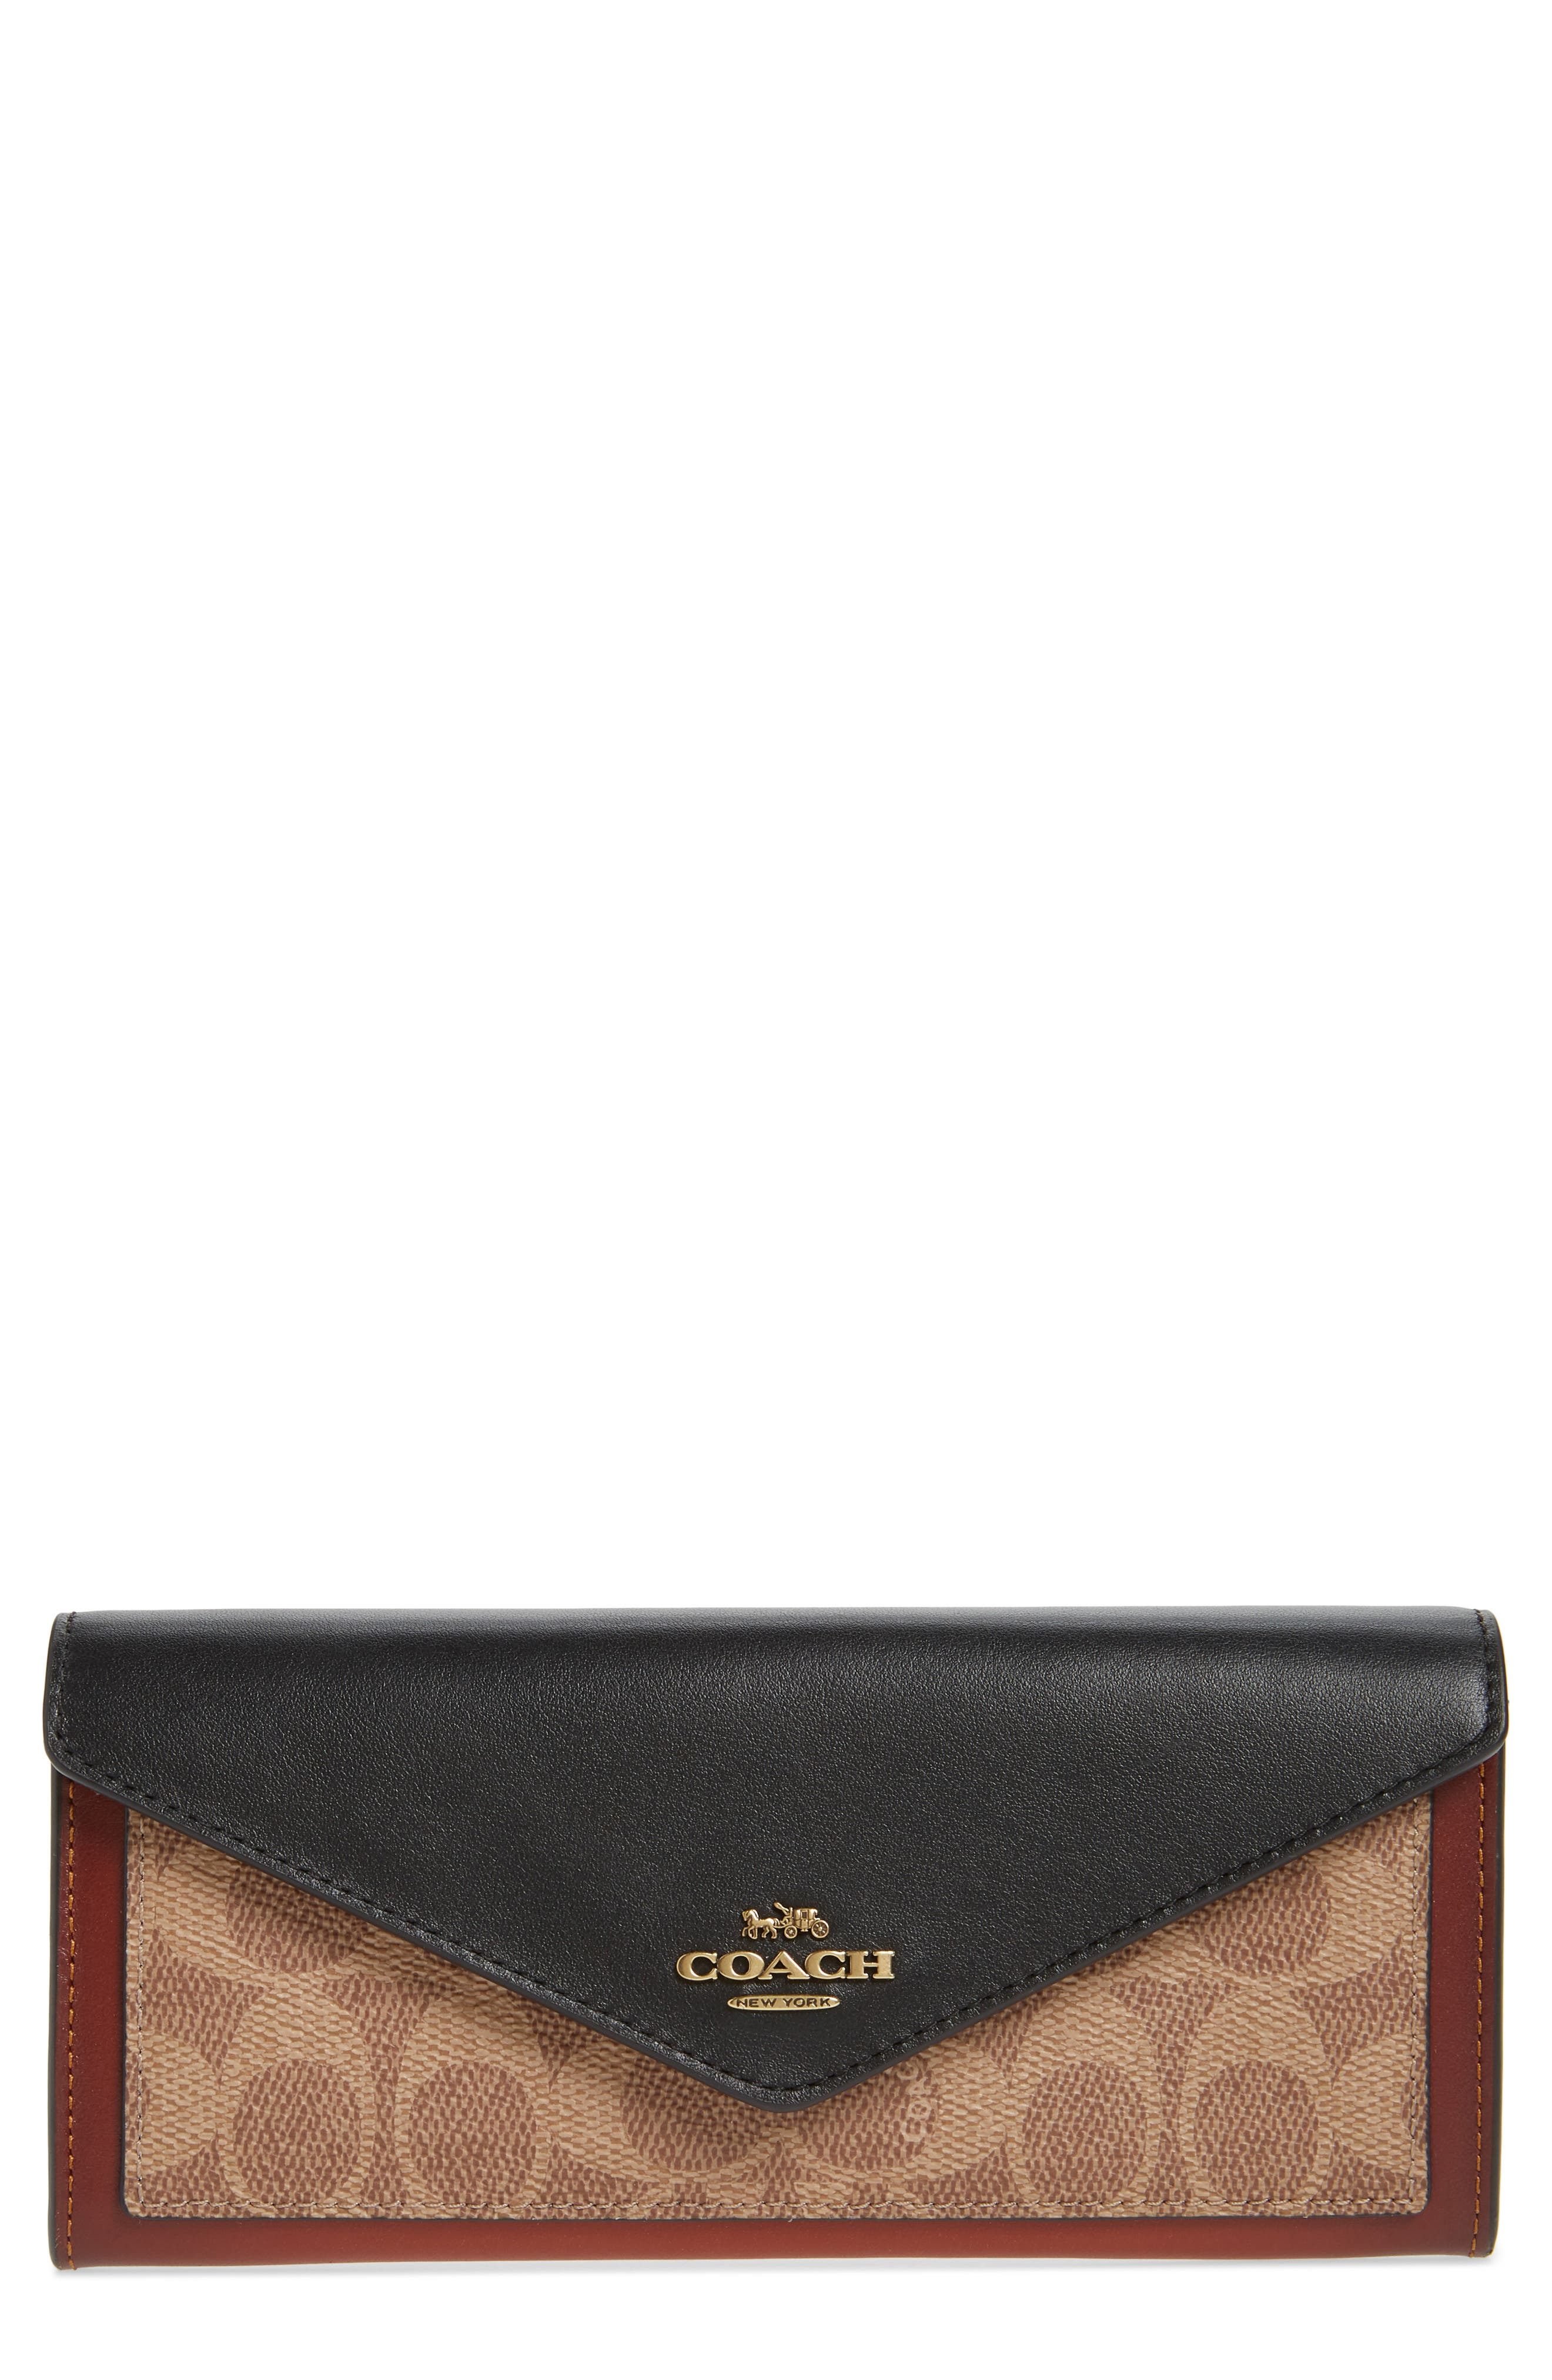 COACH, Colorblock Leather & Coated Canvas Wallet, Main thumbnail 1, color, TAN BLACK